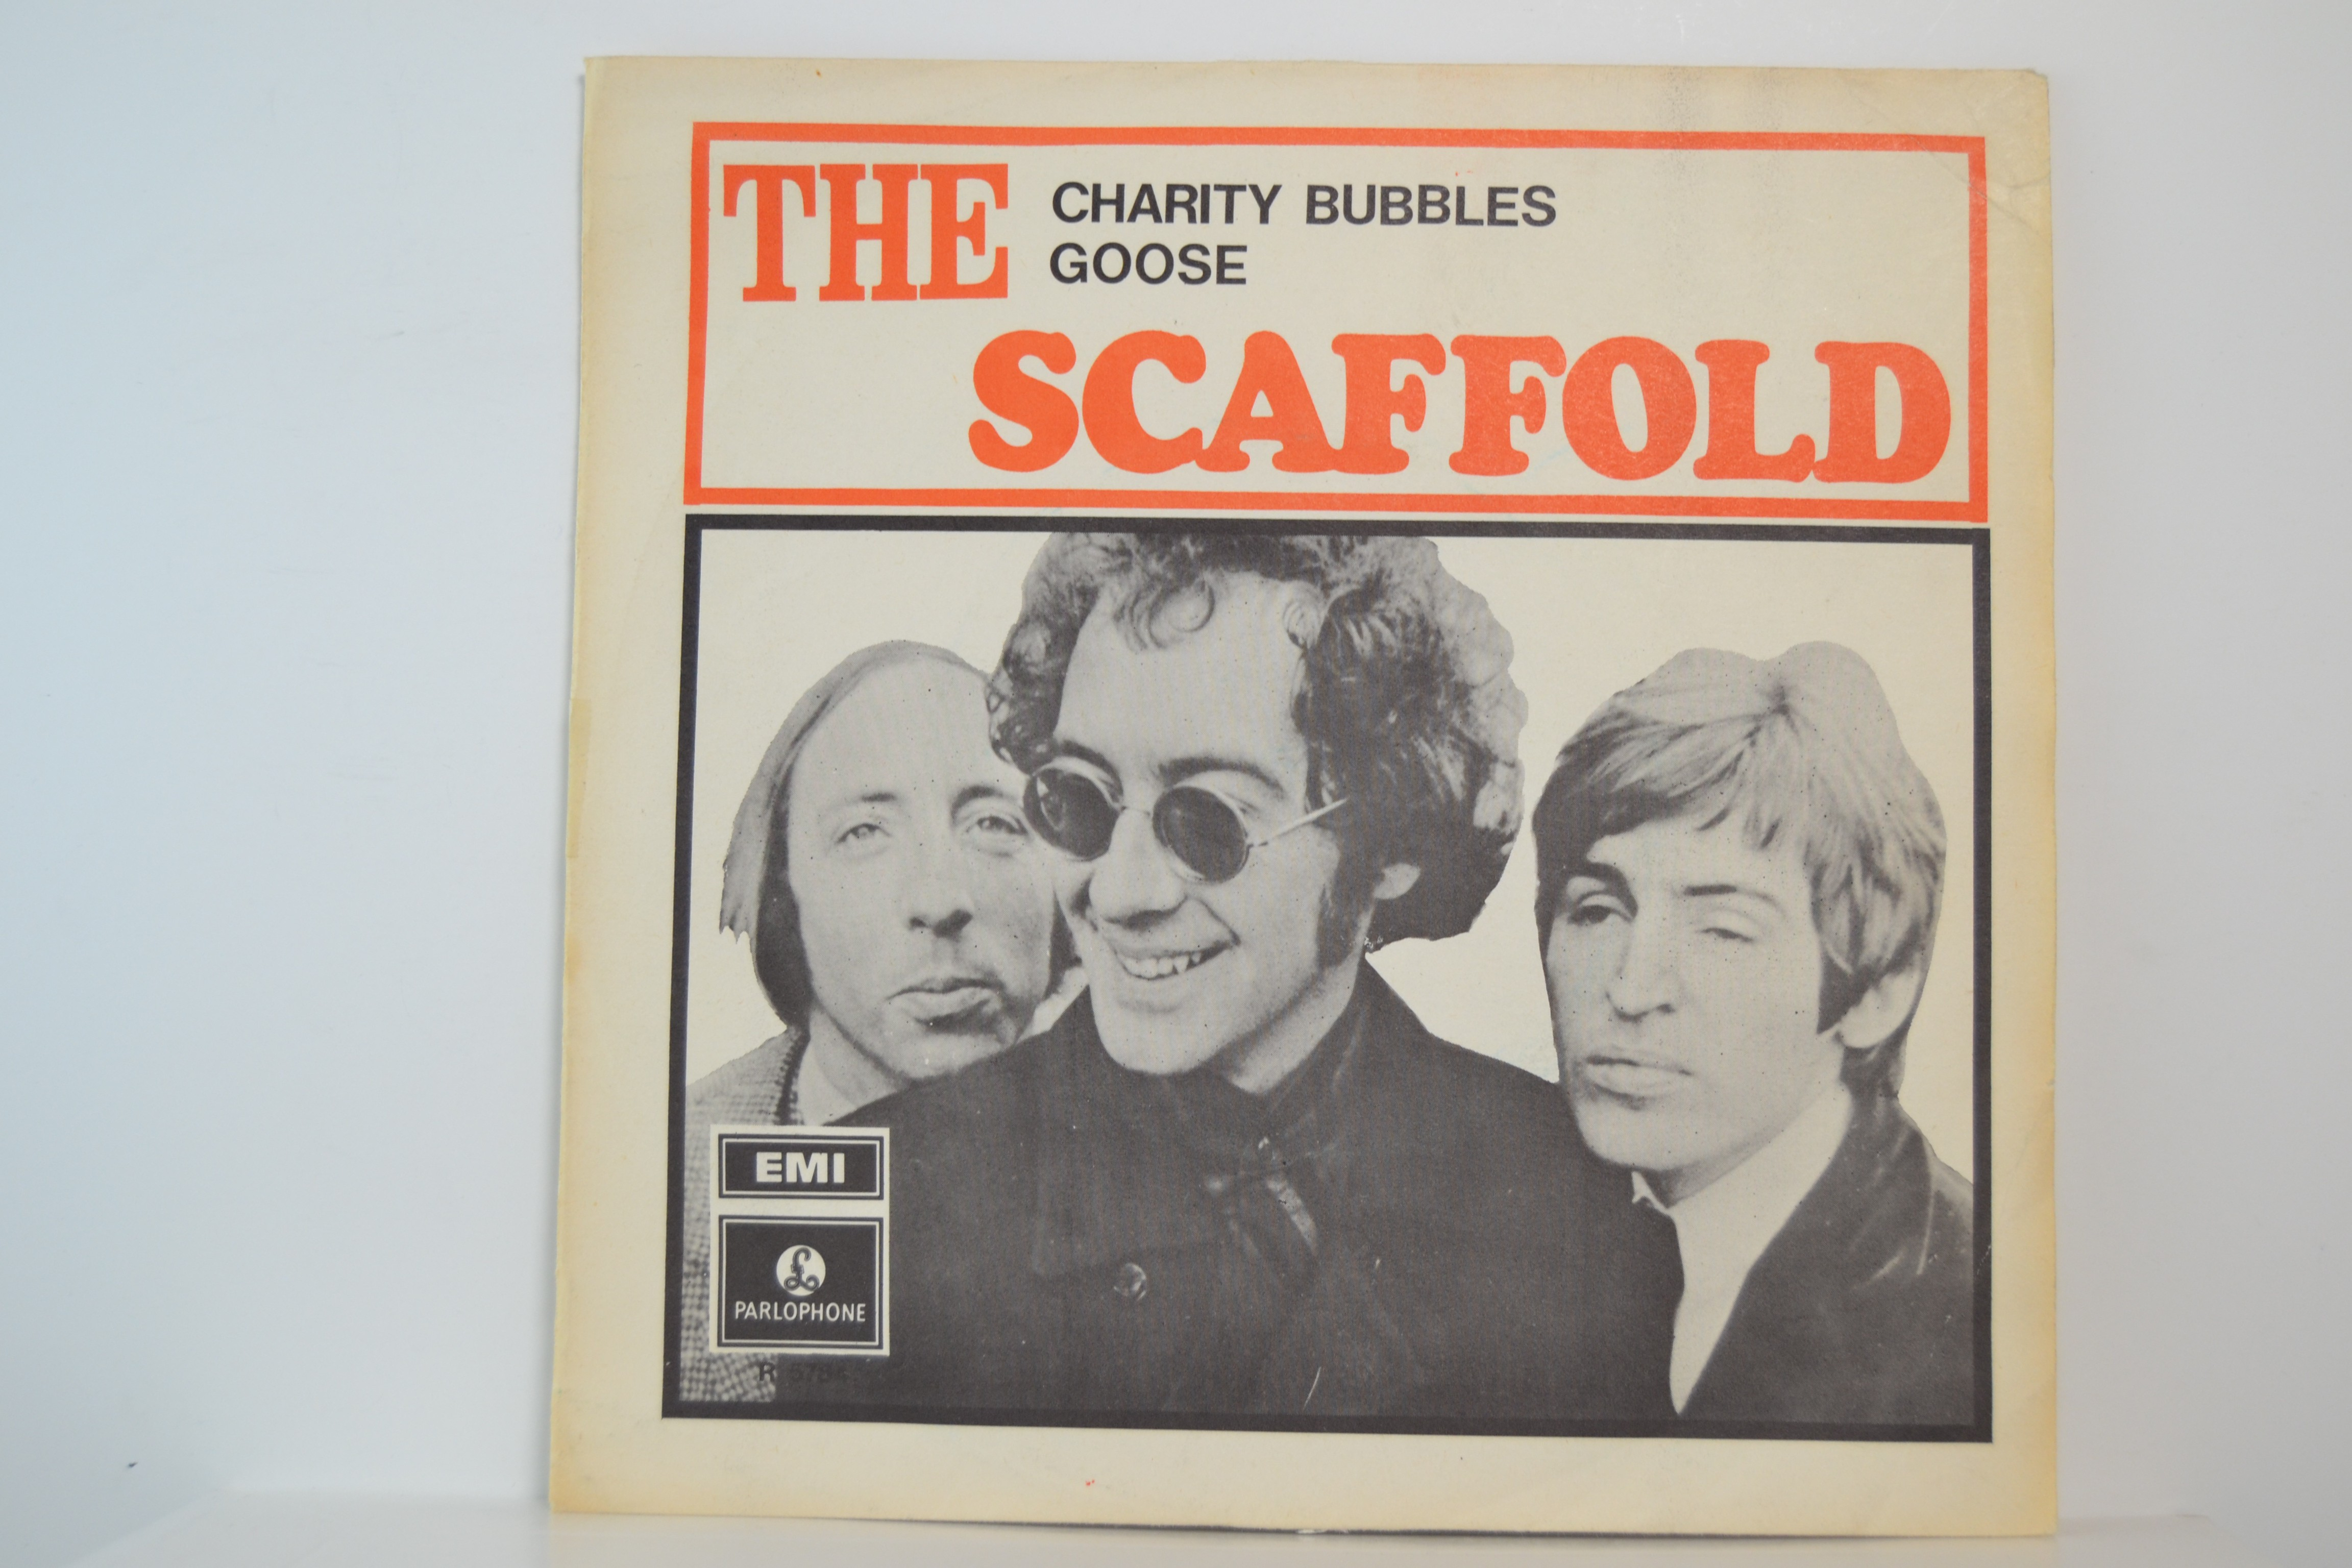 SCAFFOLD : Charity bubbles / Goose